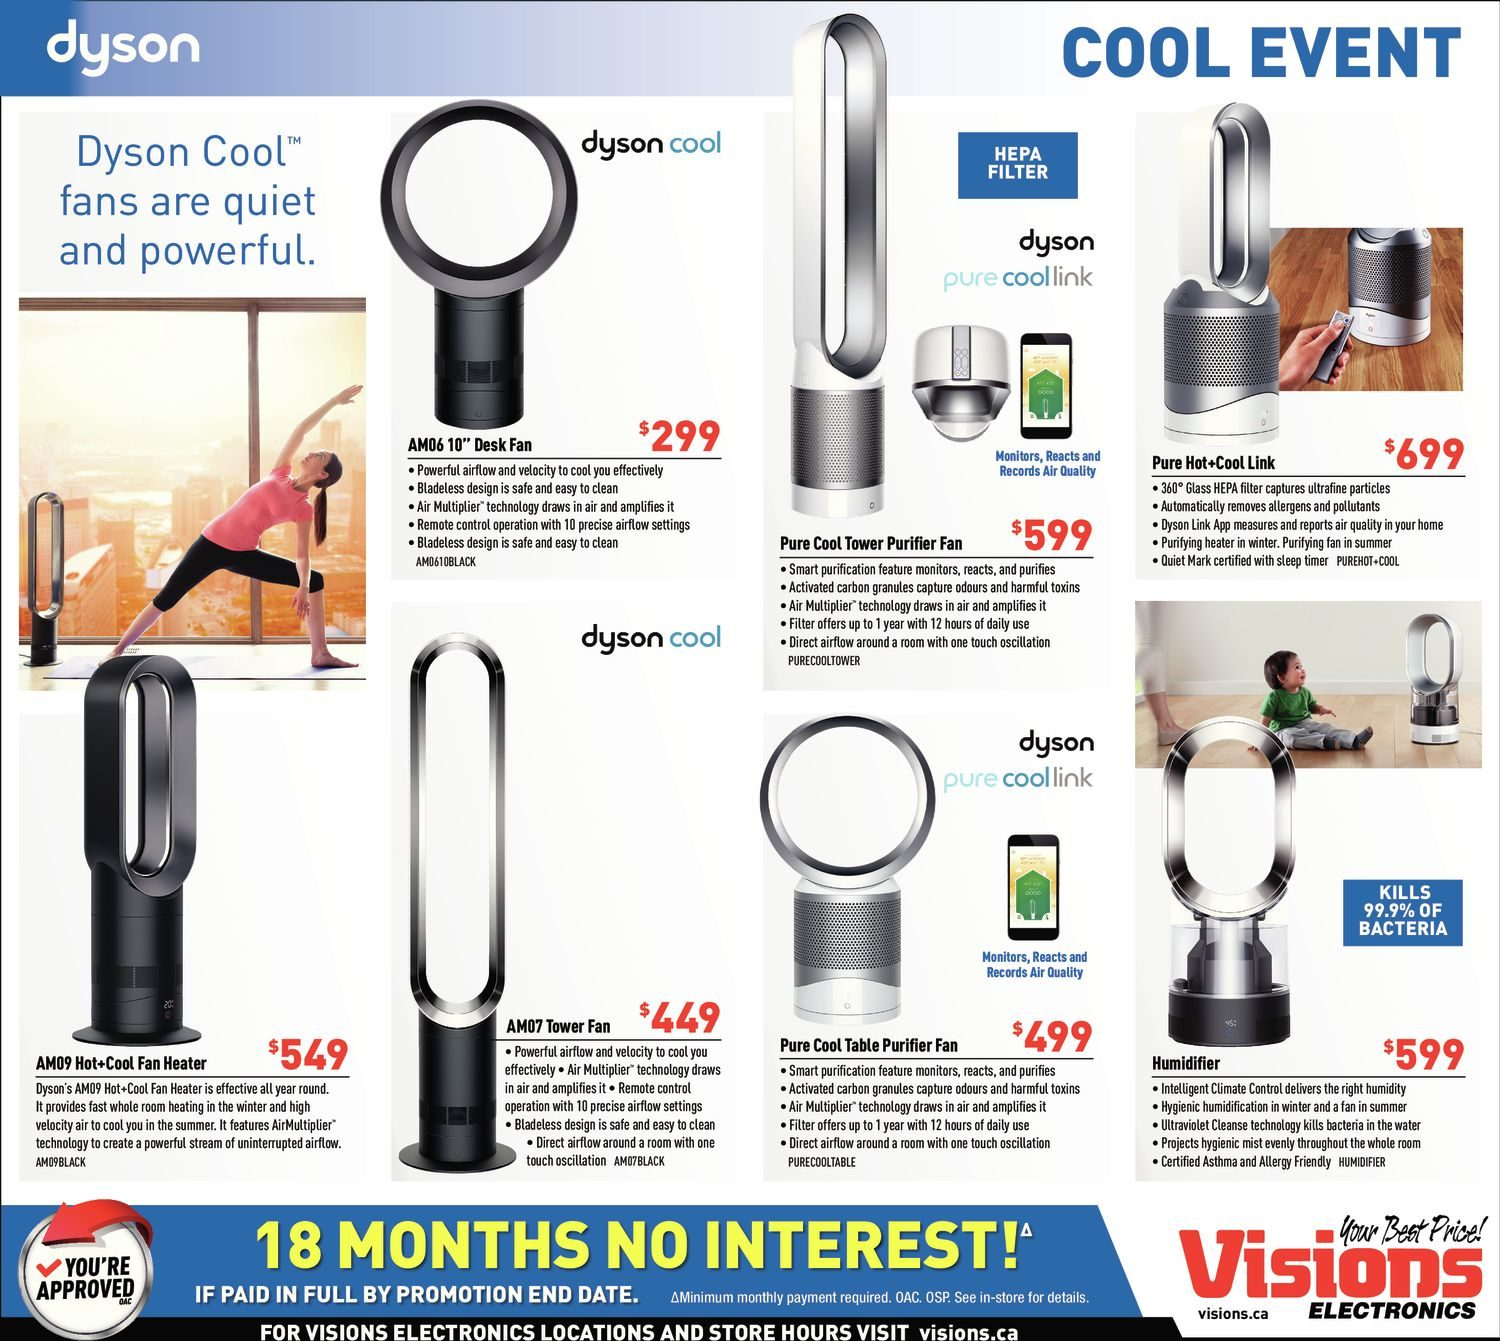 Visions Electronics Weekly Flyer - Weekly - Playoff Savings